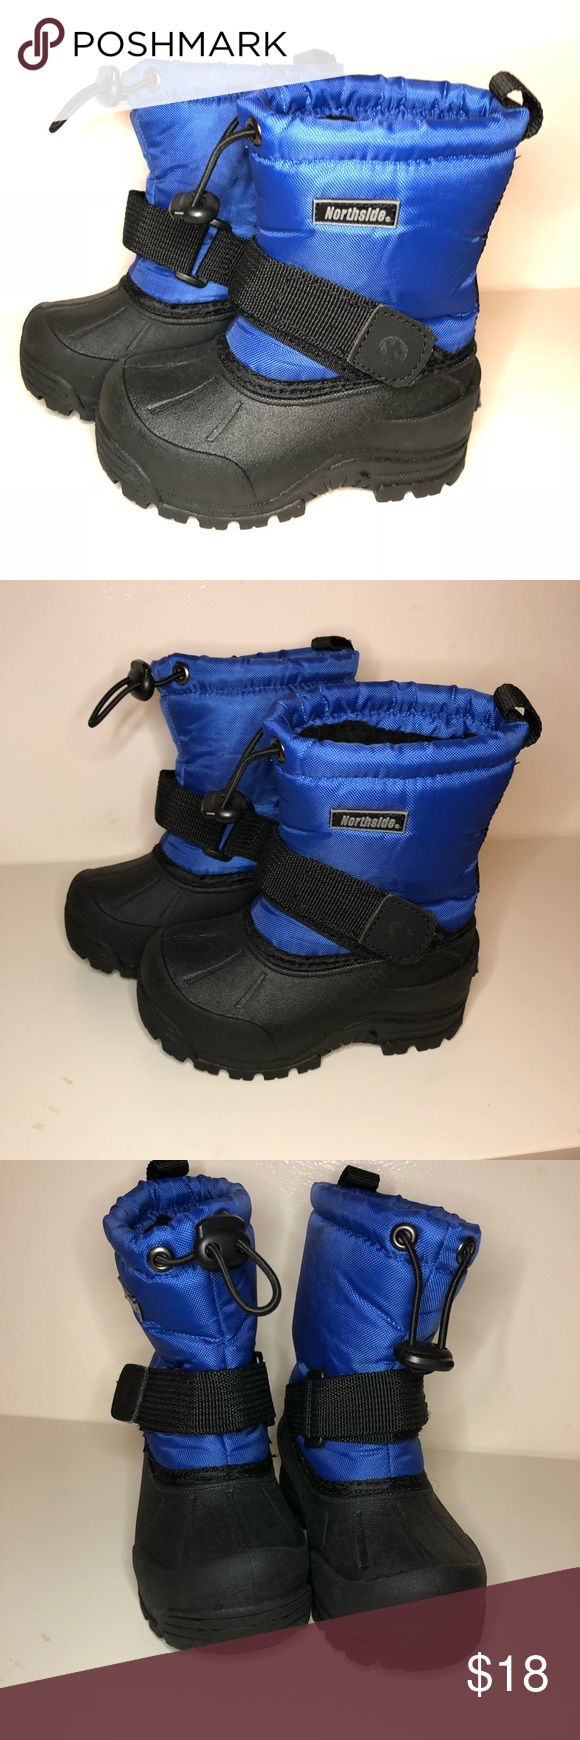 Toddler boys snow boots Northside snow boots. Like new. Worn once. No wear on soles, see photo. Northside Shoes Rain & Snow Boots